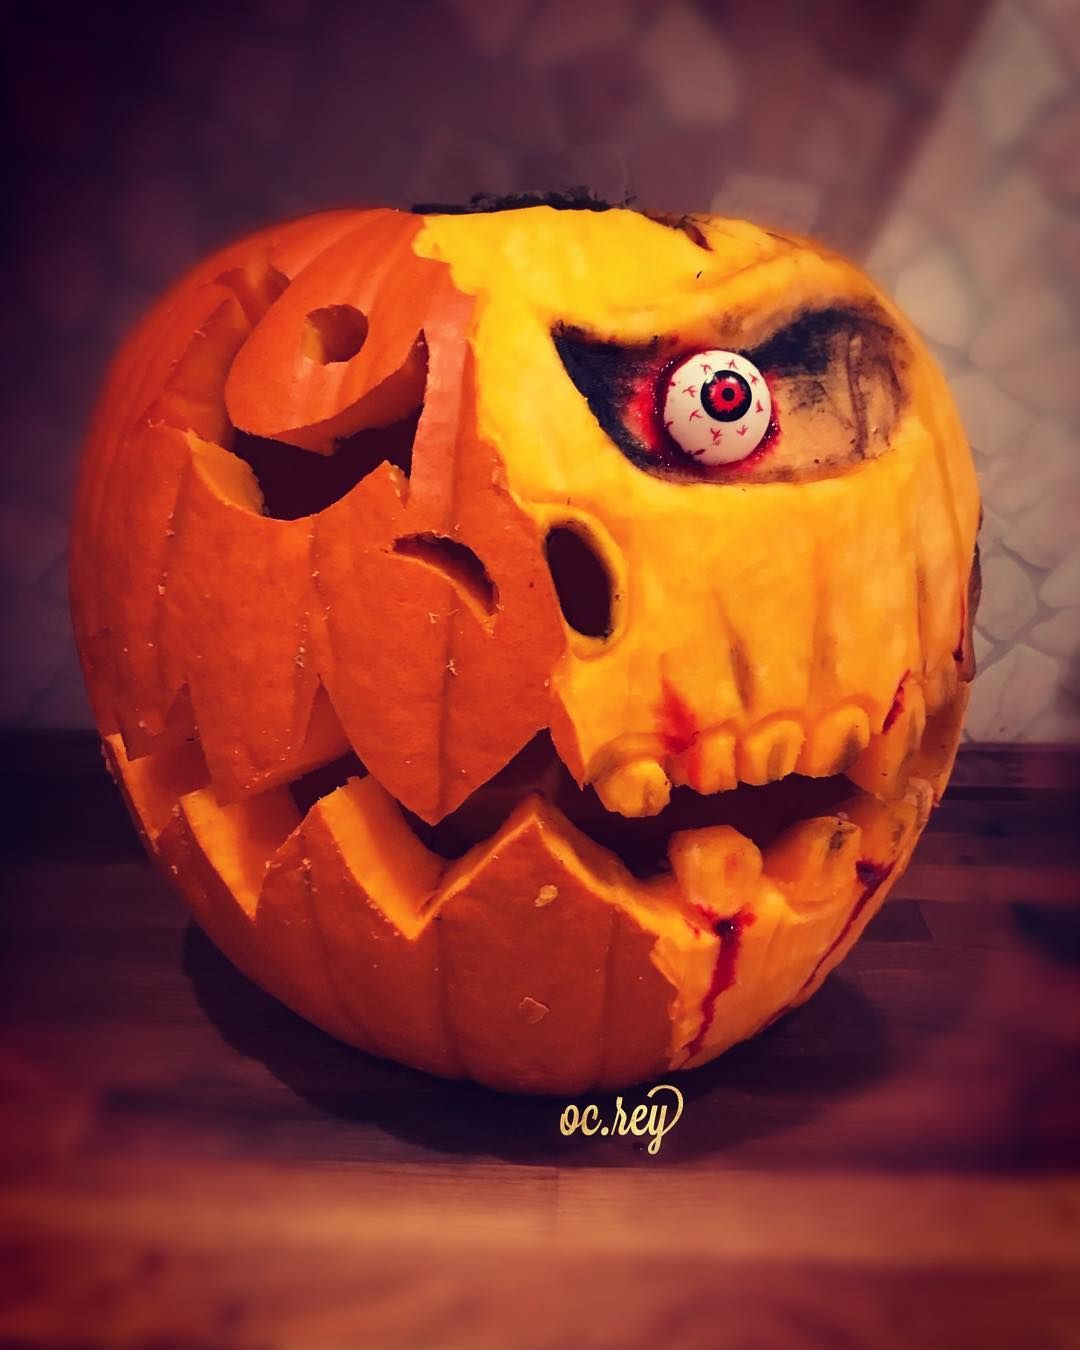 20 easy and amusing pumpkin carving ideas for halloween fall dec pinterest citrouille - Citrouille effrayante ...